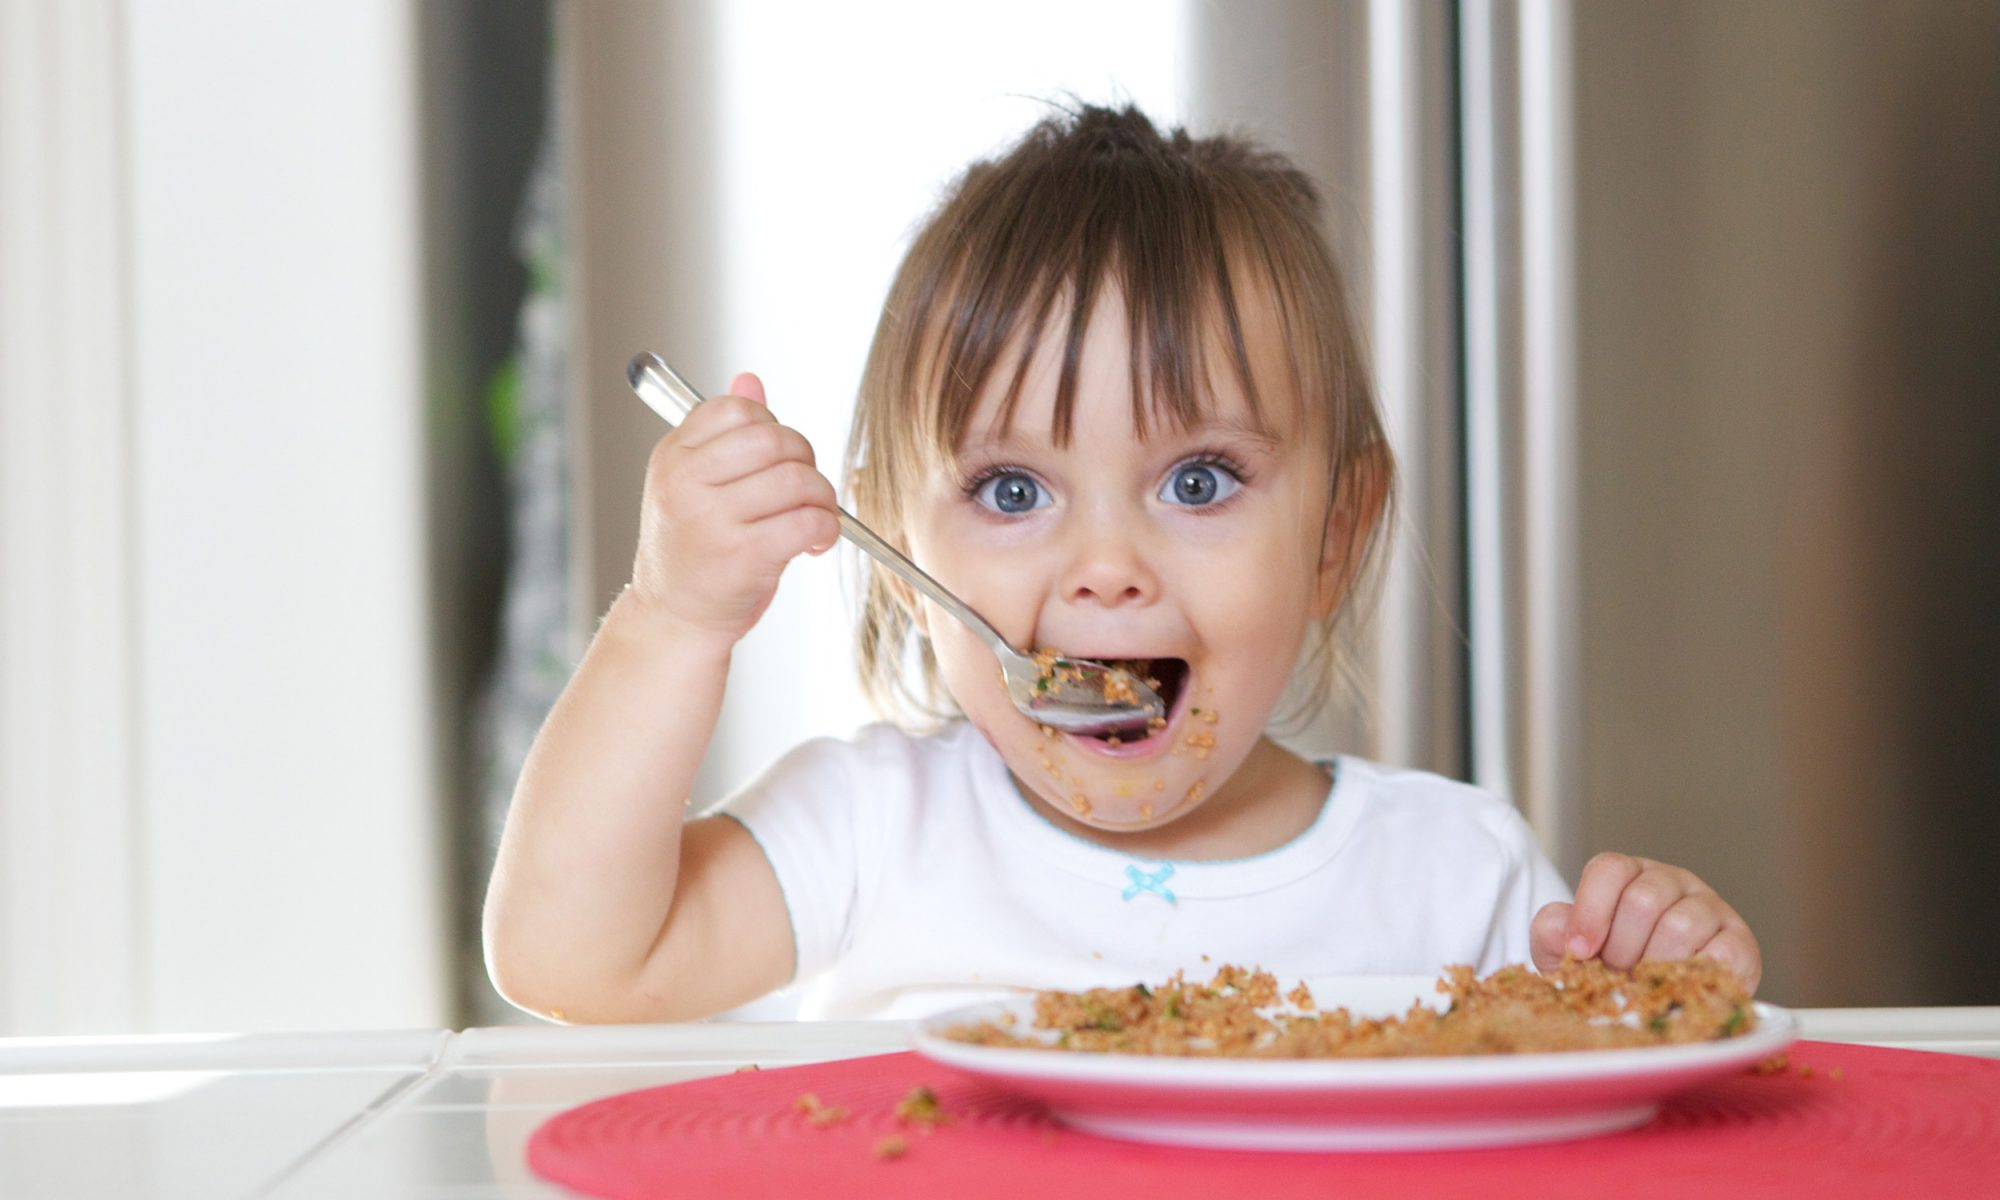 EC: 5 Simple Kids Breakfasts All Parents Should Know